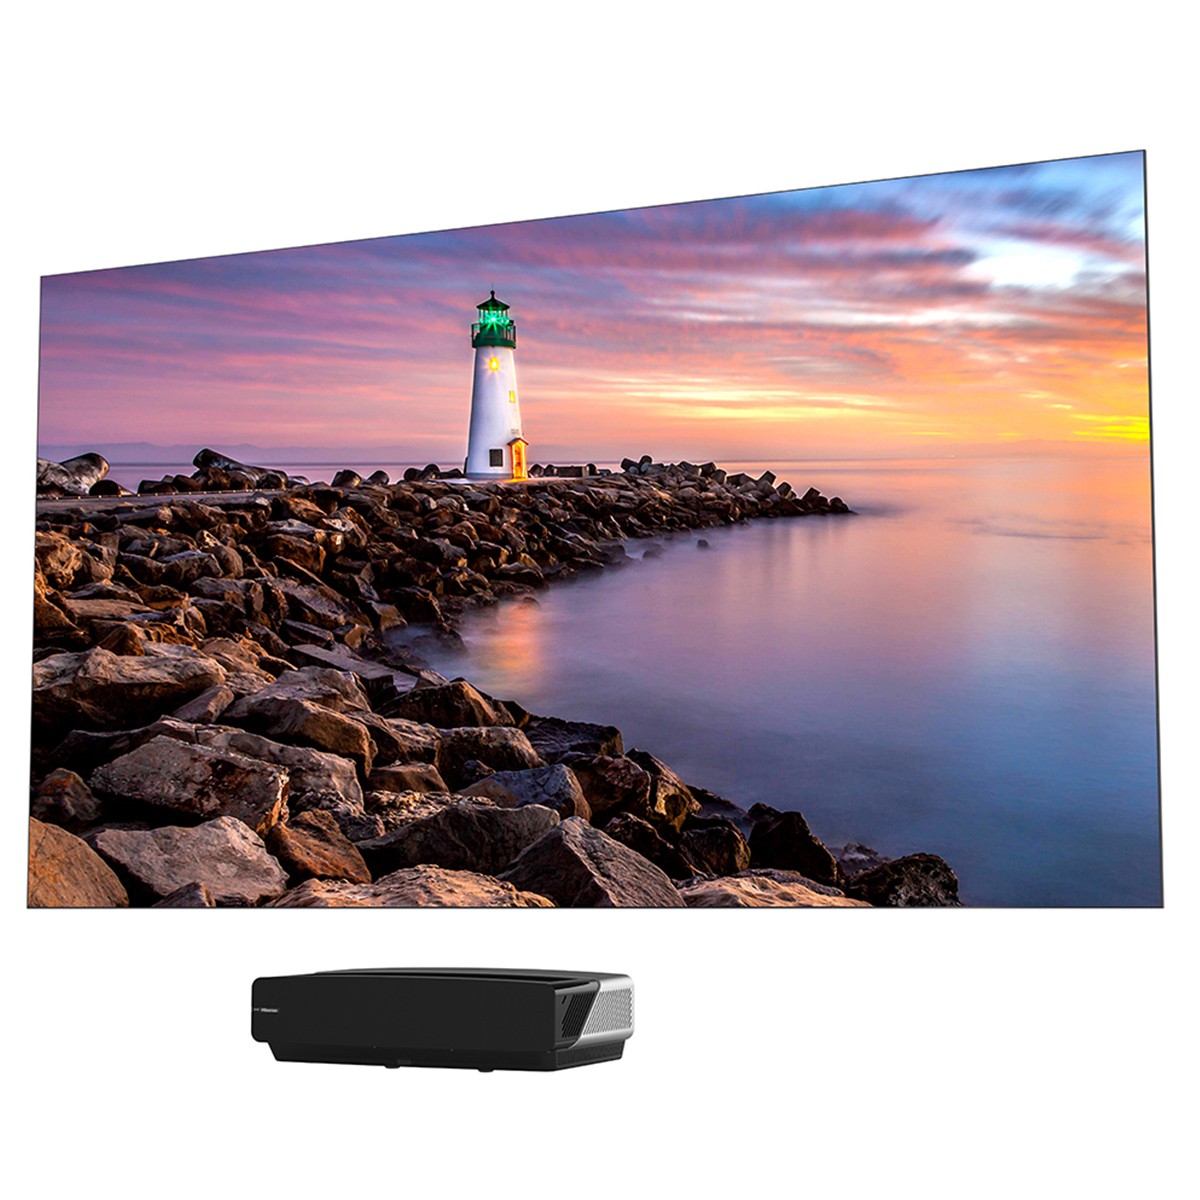 Hisense 120l5fset With Screen Life Style Store